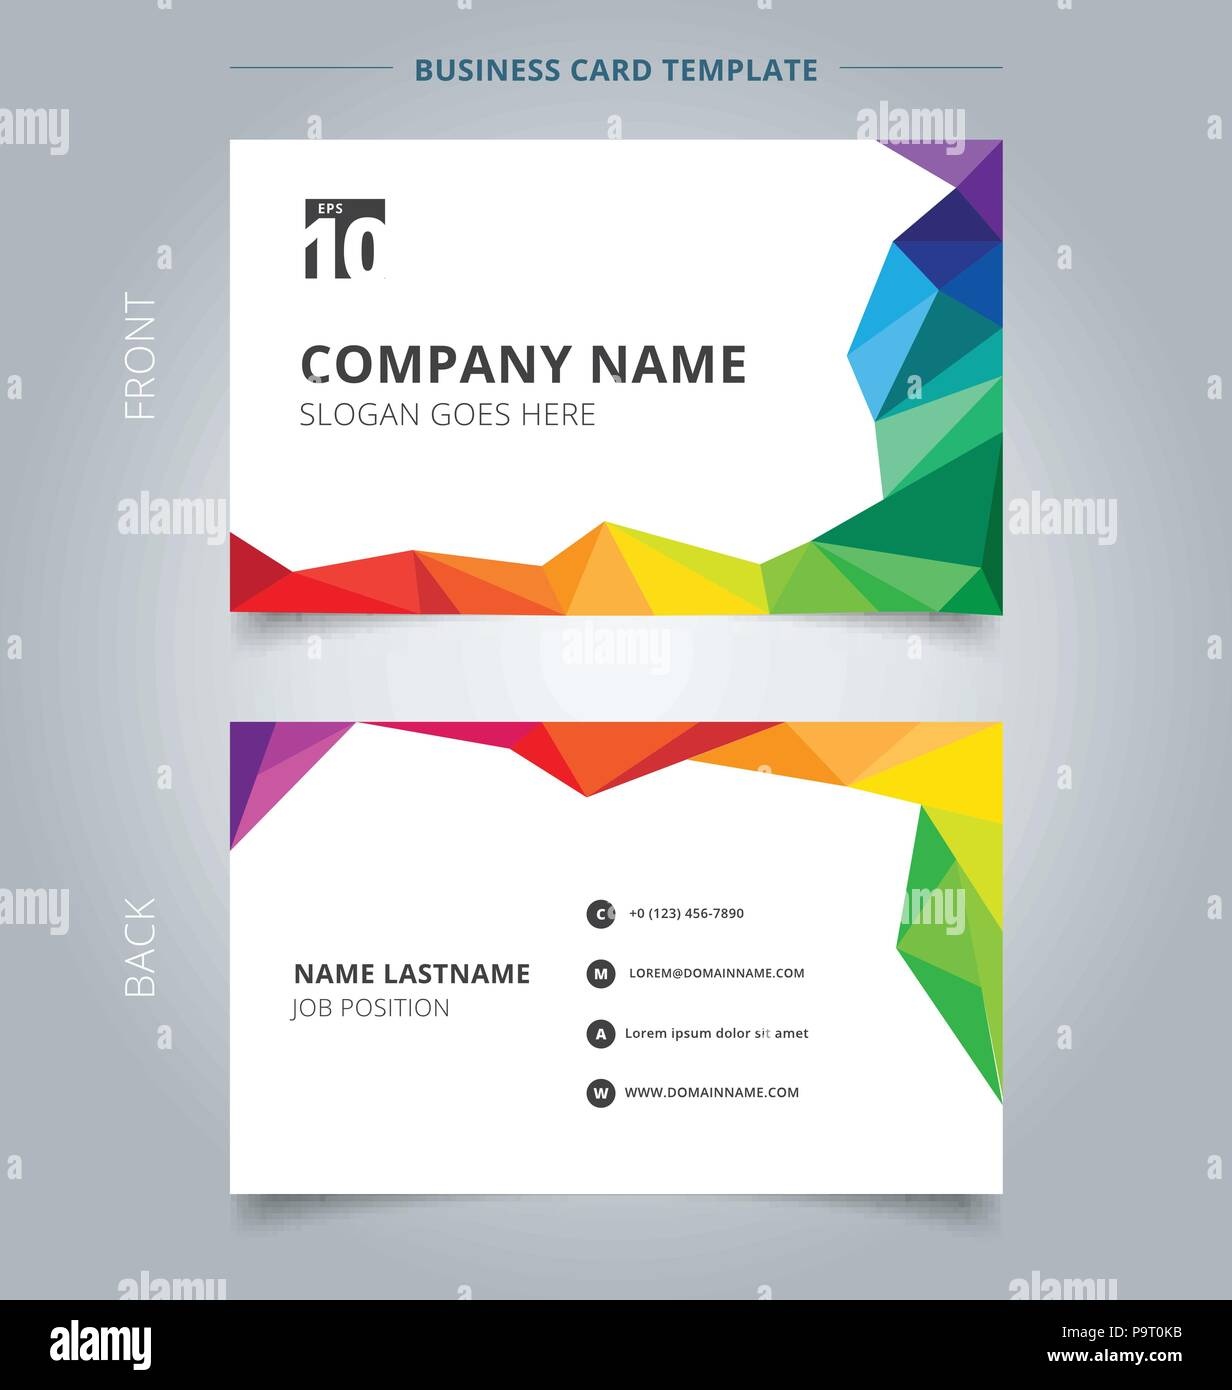 Business name card template design abstract colorful low polygon business name card template design abstract colorful low polygon style on white background vector illustration flashek Gallery